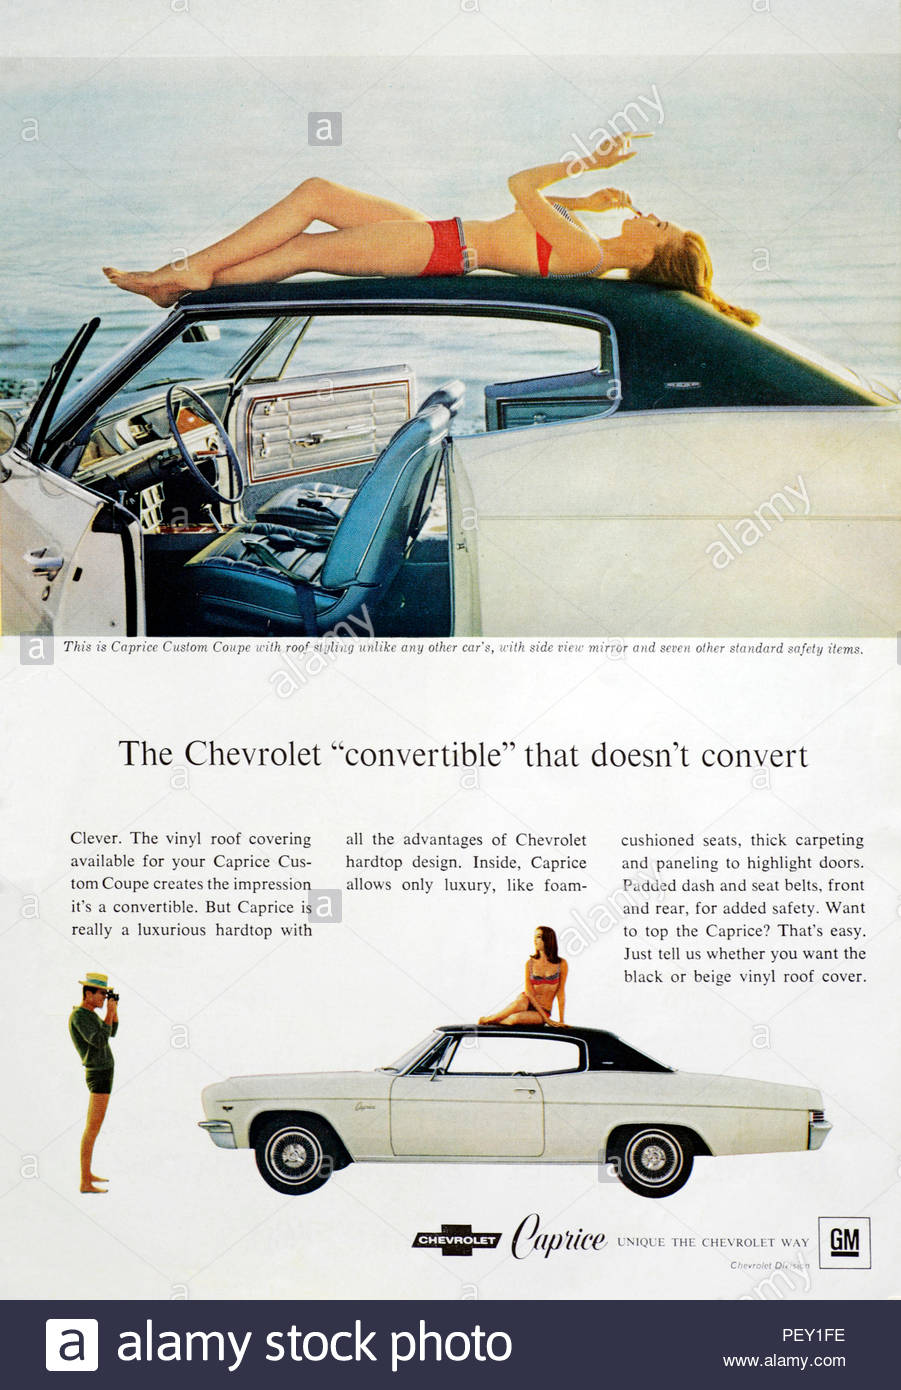 Vintage advertising for the Chevrolet Caprice Custom Coupe Car 1966 - Stock Image